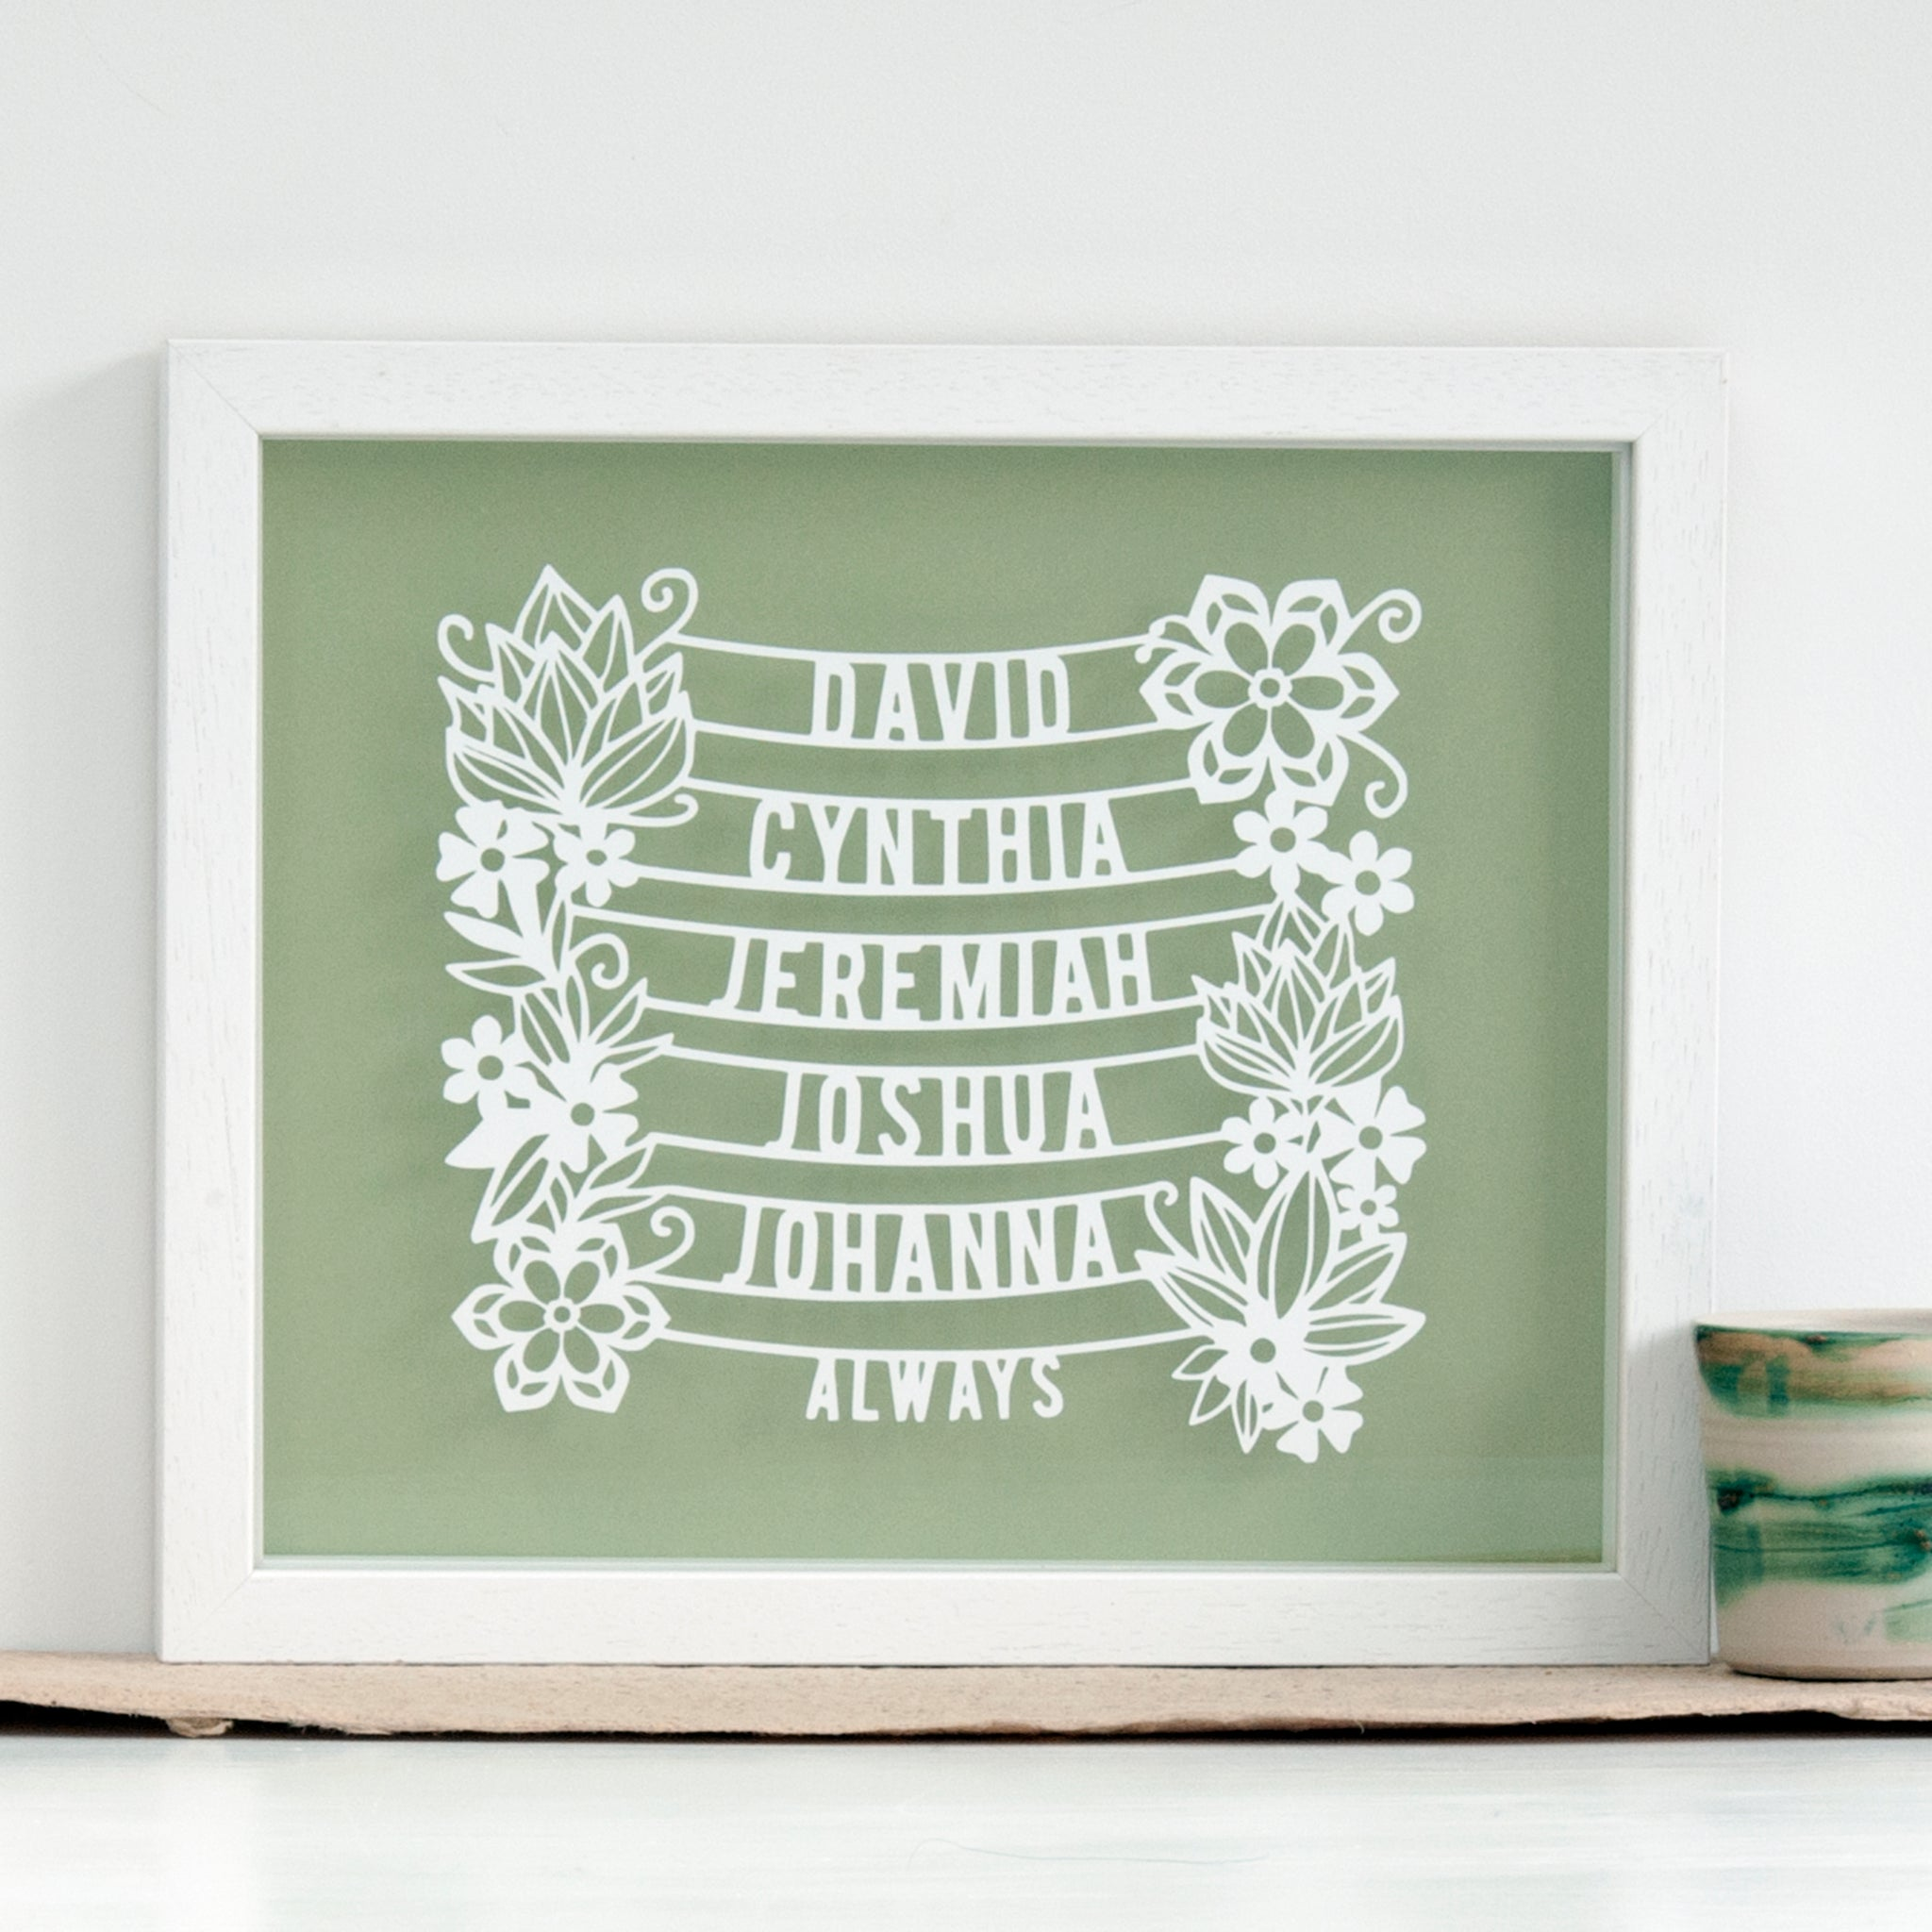 Personalised Family Tree Gift - Ant Design Gifts